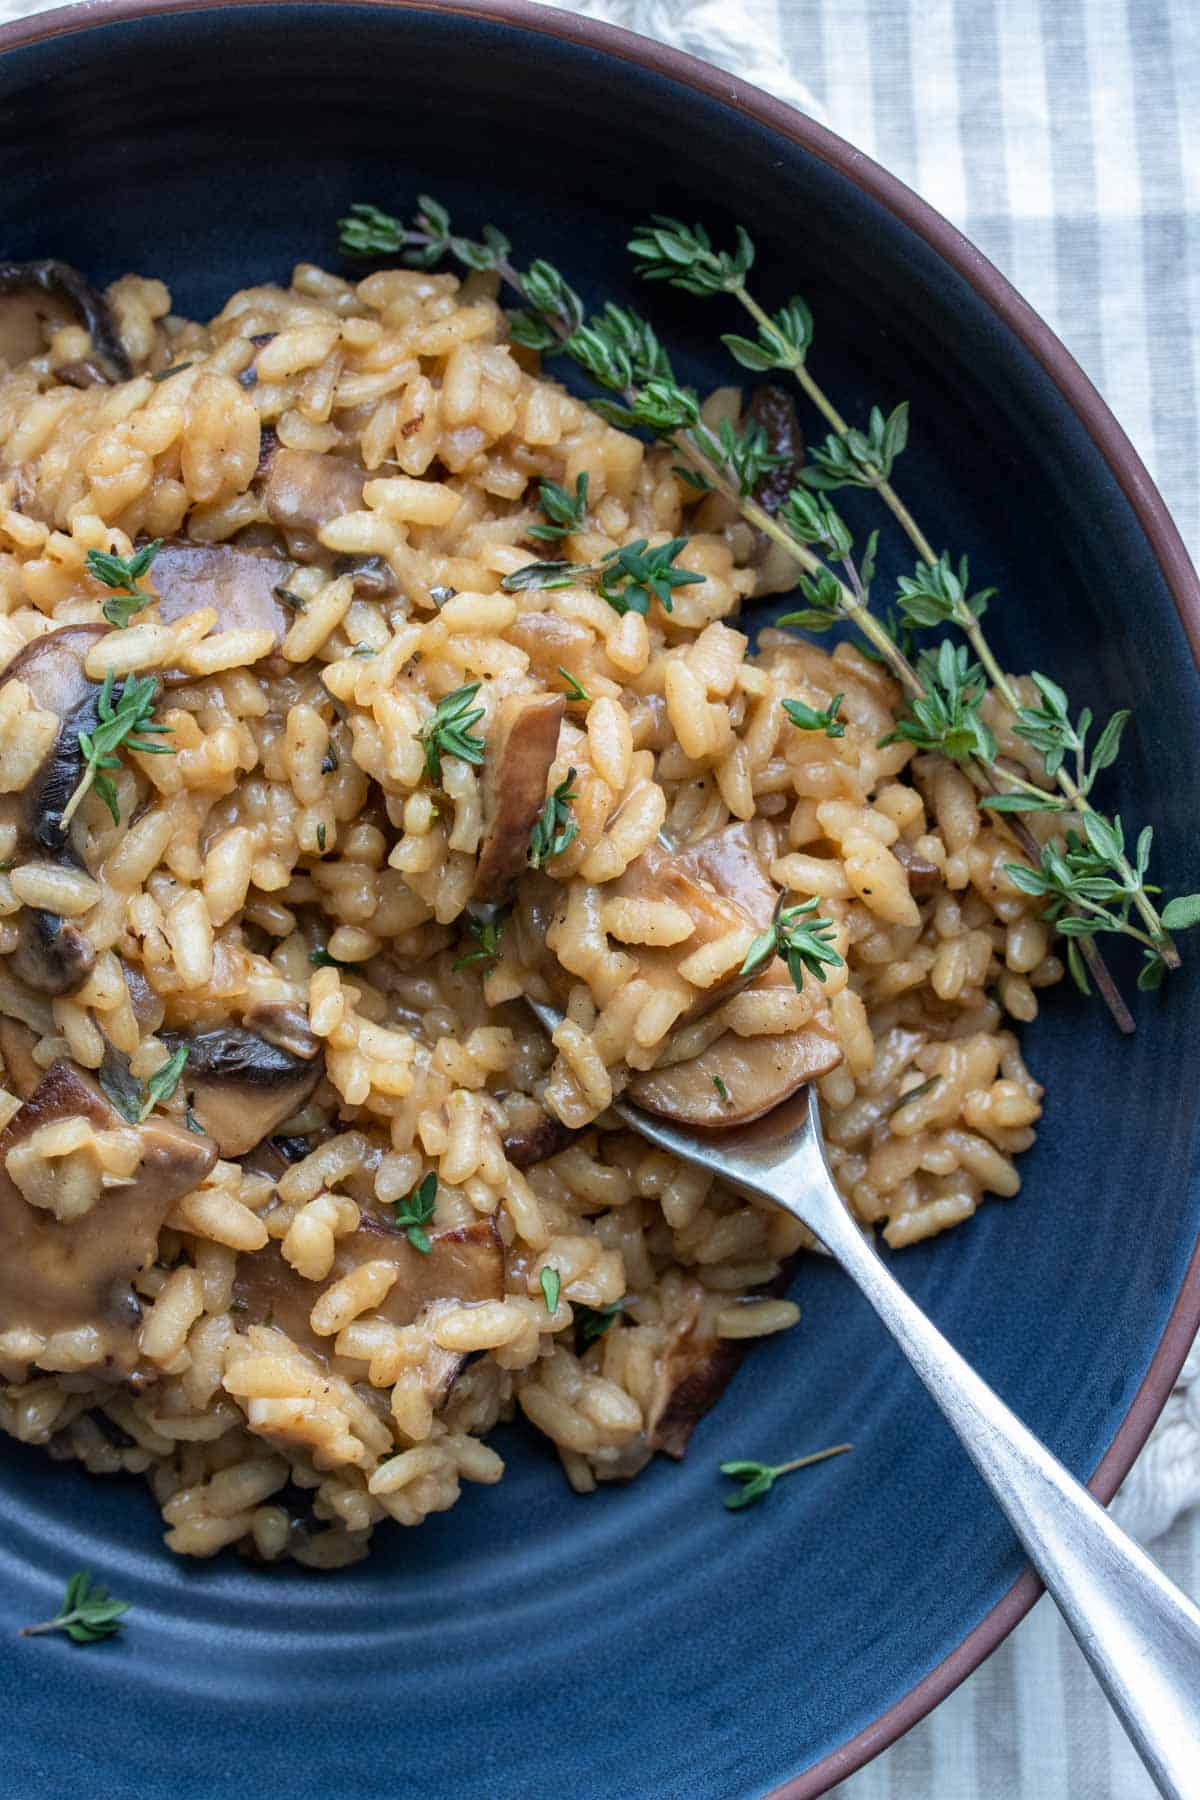 Fork getting a bite of mushroom risotto from a dark blue bowl